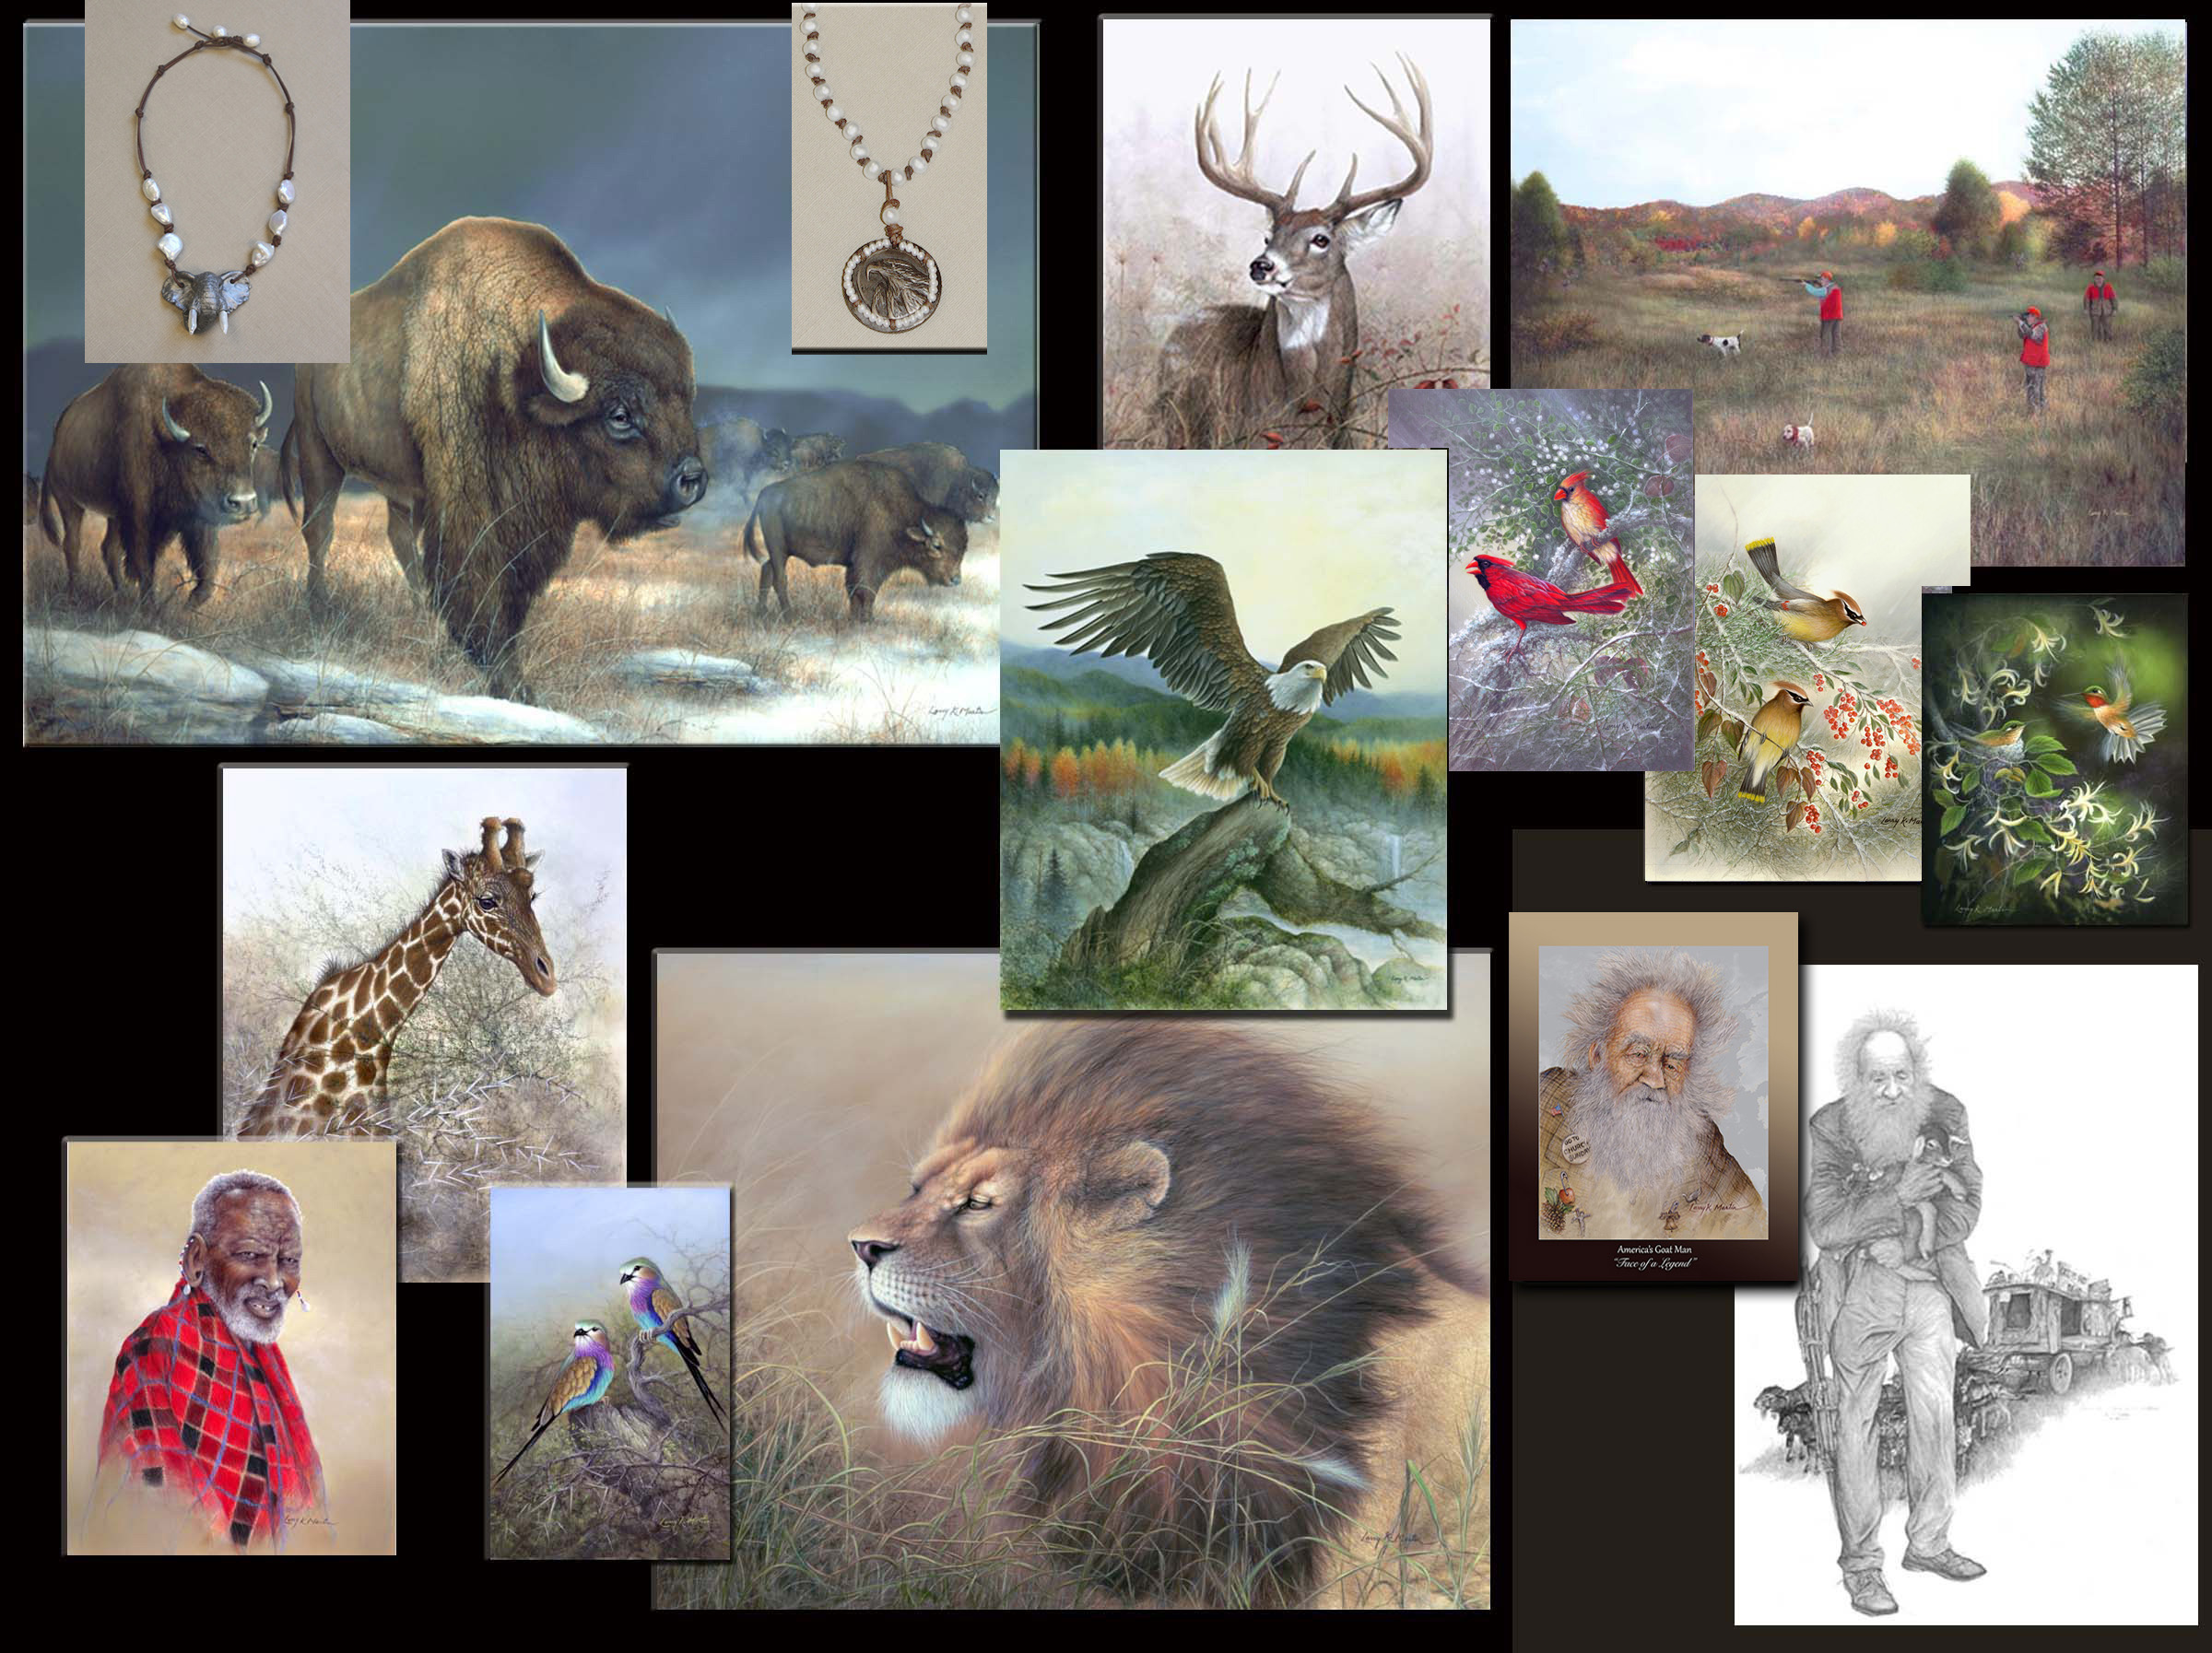 Larry K. Martin home page, eagles, deer, bison, songbirds,butterflies, african animals, goatman